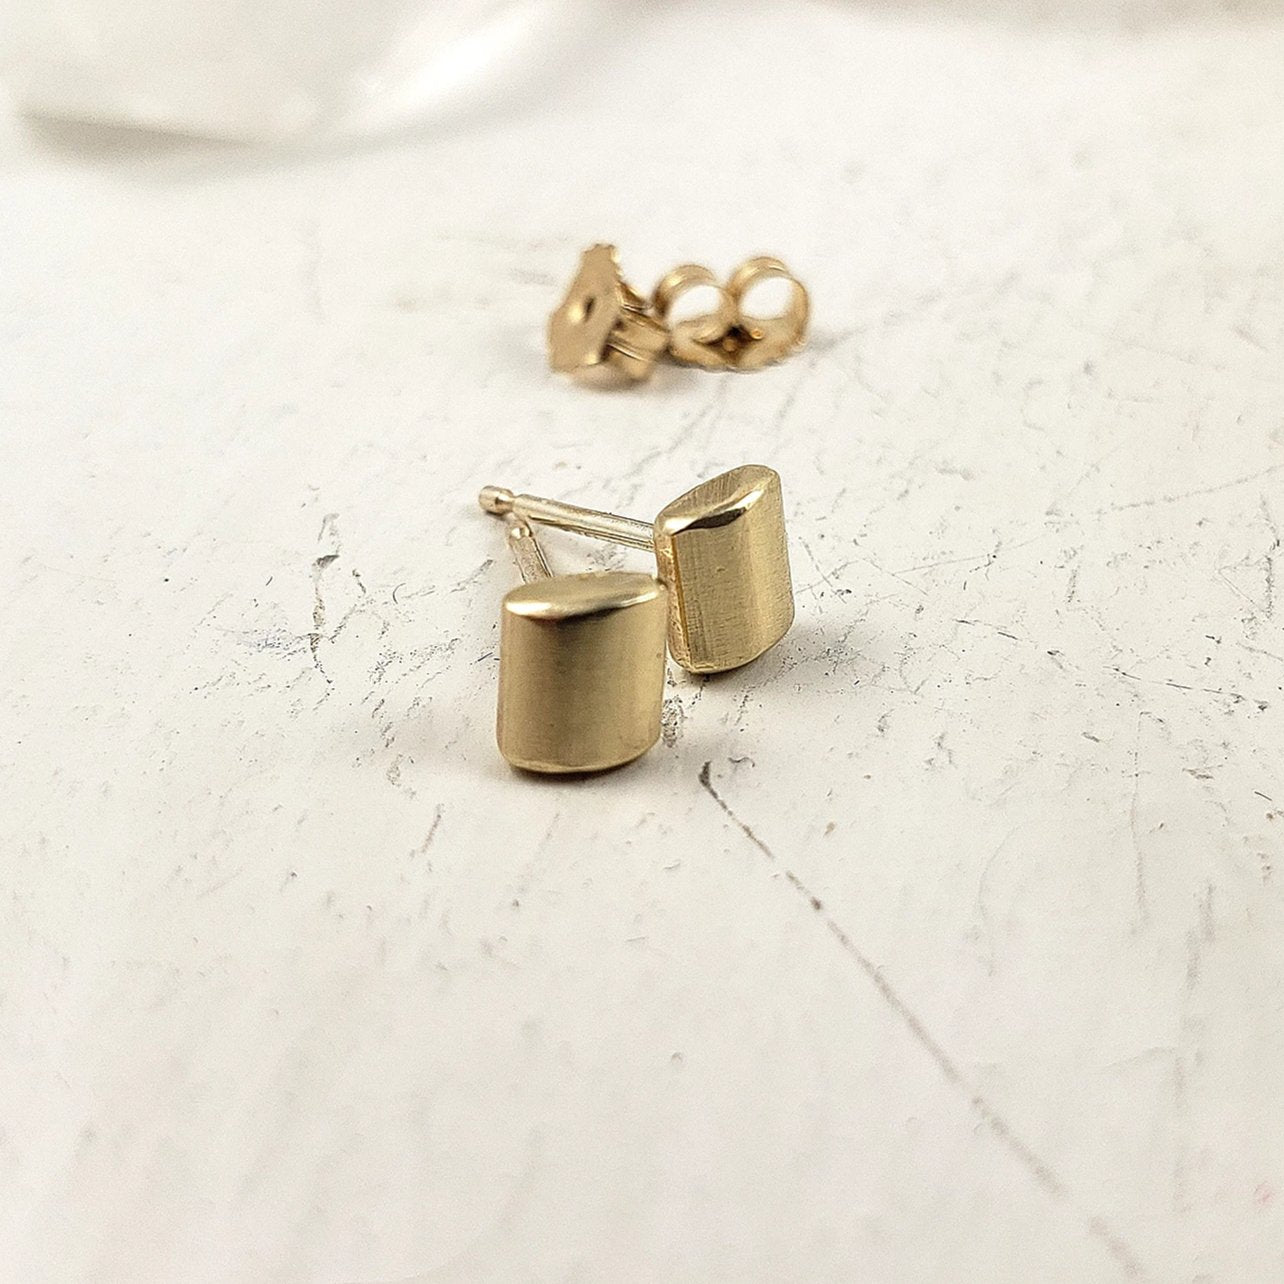 solid 10k yellow gold studs, handmade in Canada